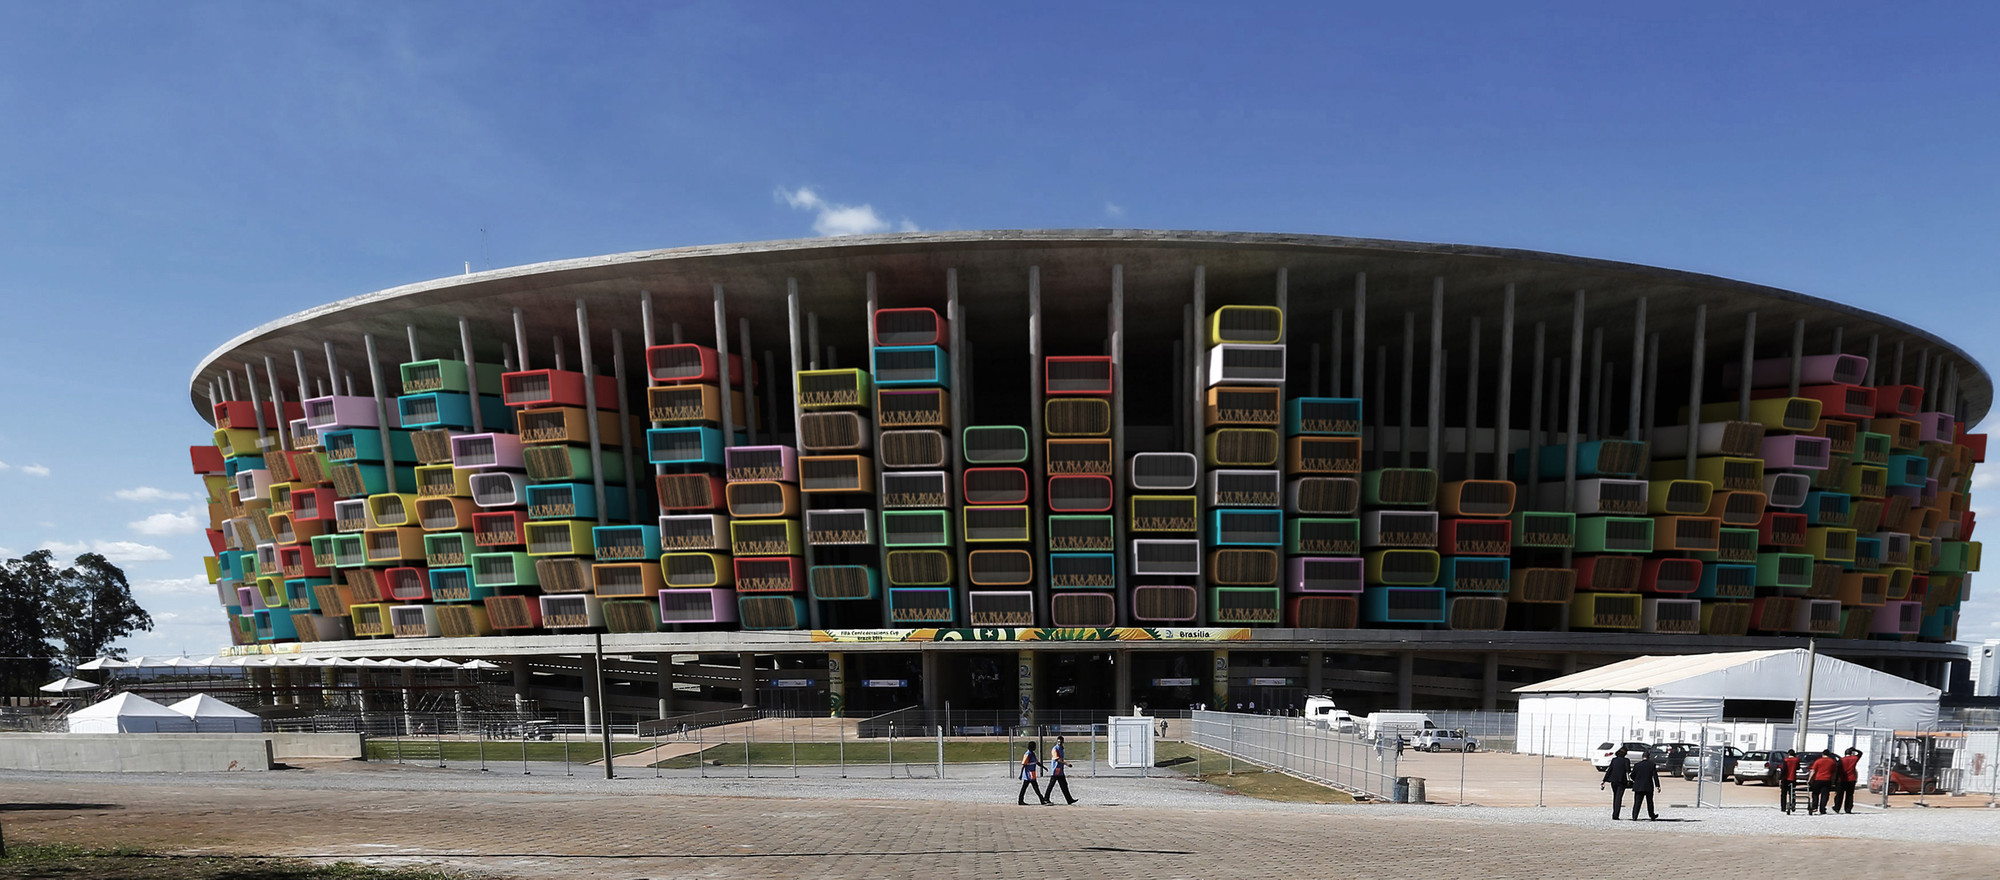 Render of the National Stadium of Brazil, based on a photograph by EFE